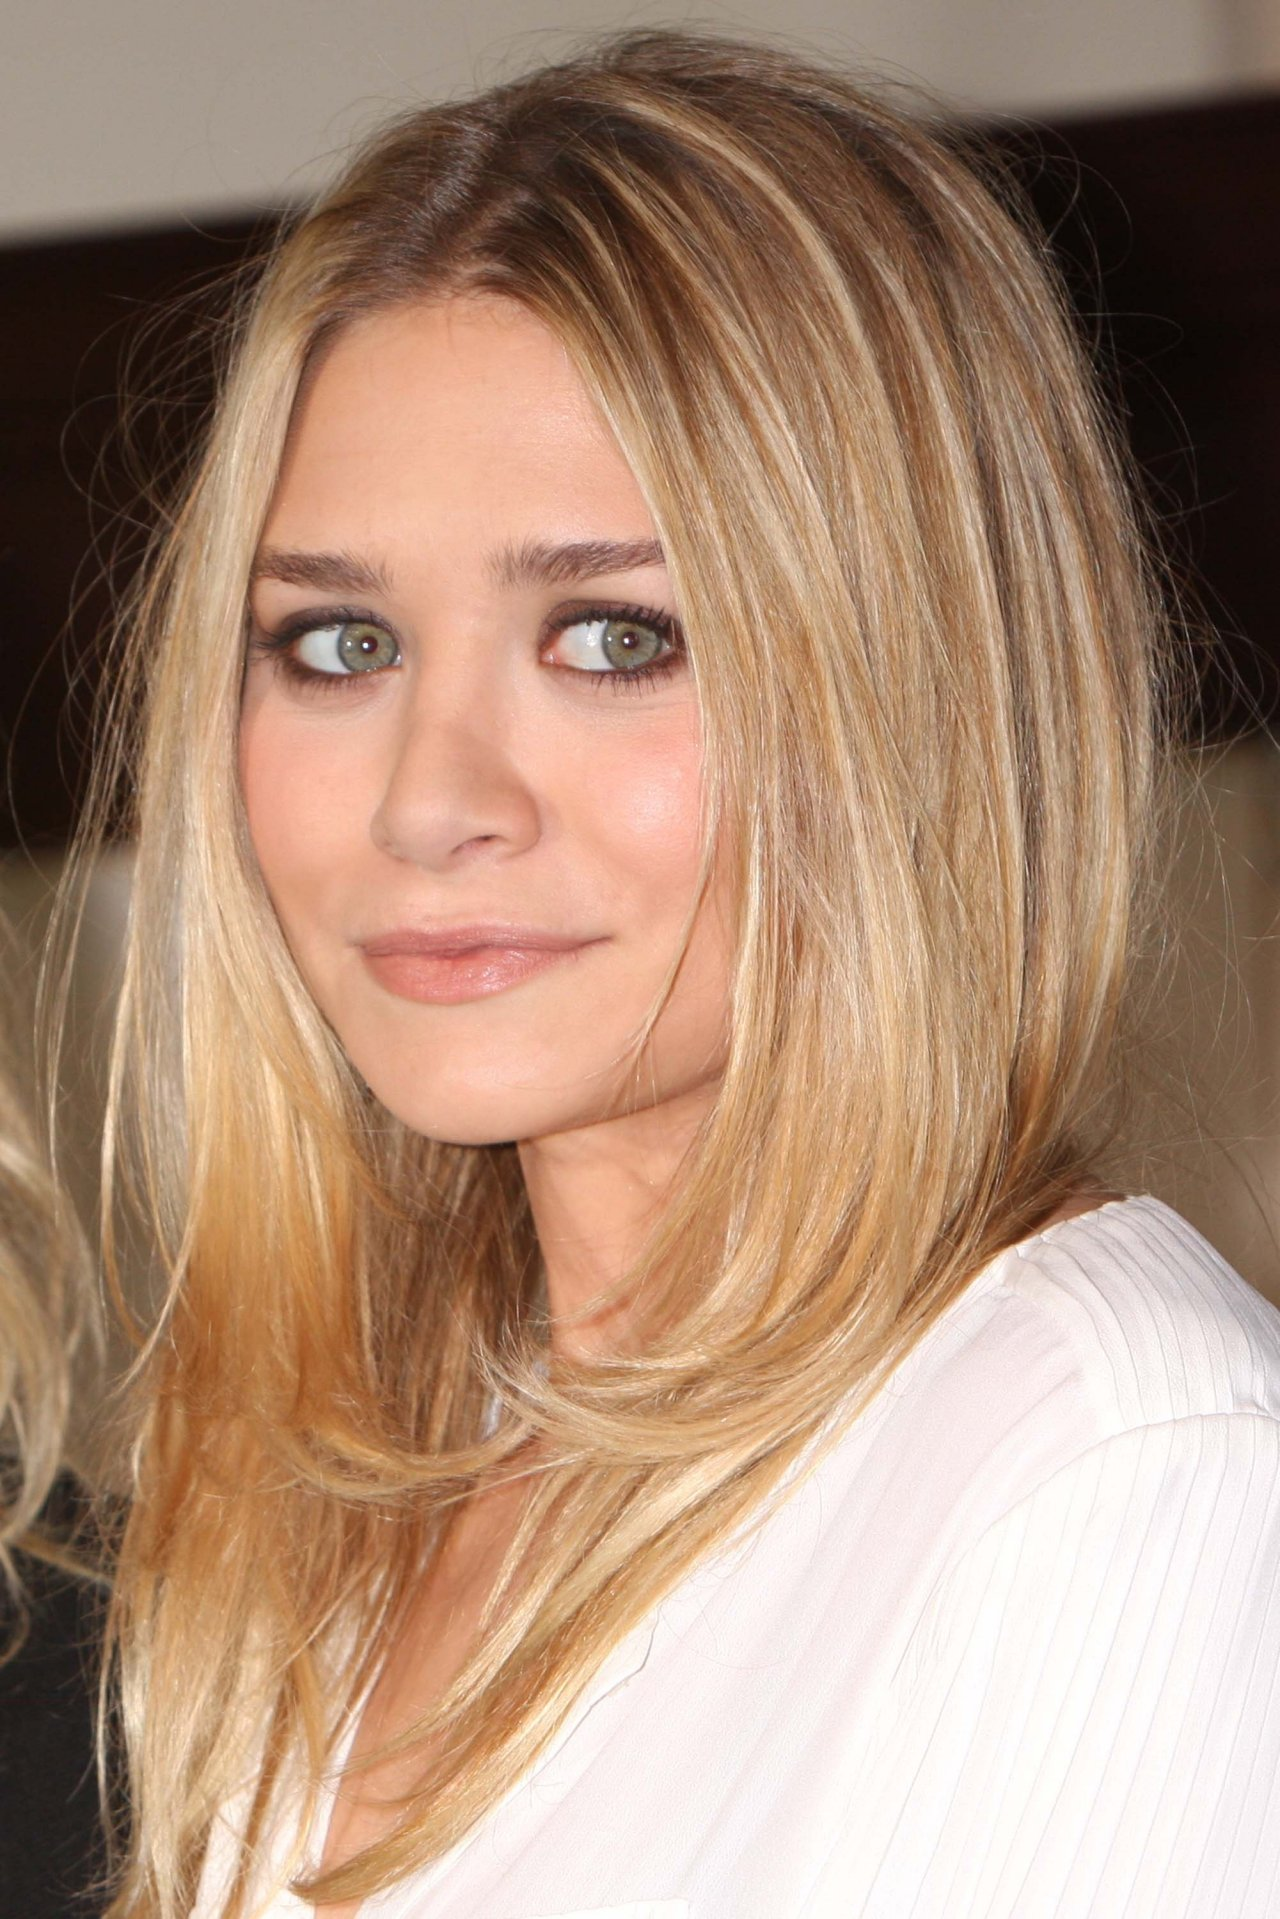 ashley olsen weddingashley olsen net worth, ashley olsen married, ashley olsen age, ashley olsen 2015, ashley olsen instagram, ashley olsen movies and tv shows, ashley olsen and mary kate, ashley olsen fiance, ashley olsen twitter, ashley olsen wedding, ashley olsen style, ashley olsen imdb, ashley olsen spouse, ashley olsen full house, ashley olsen house, ashley olsen dating history, ashley olsen now, ashley olsen fuller house, ashley olsen engagement ring, ashley olsen makeup